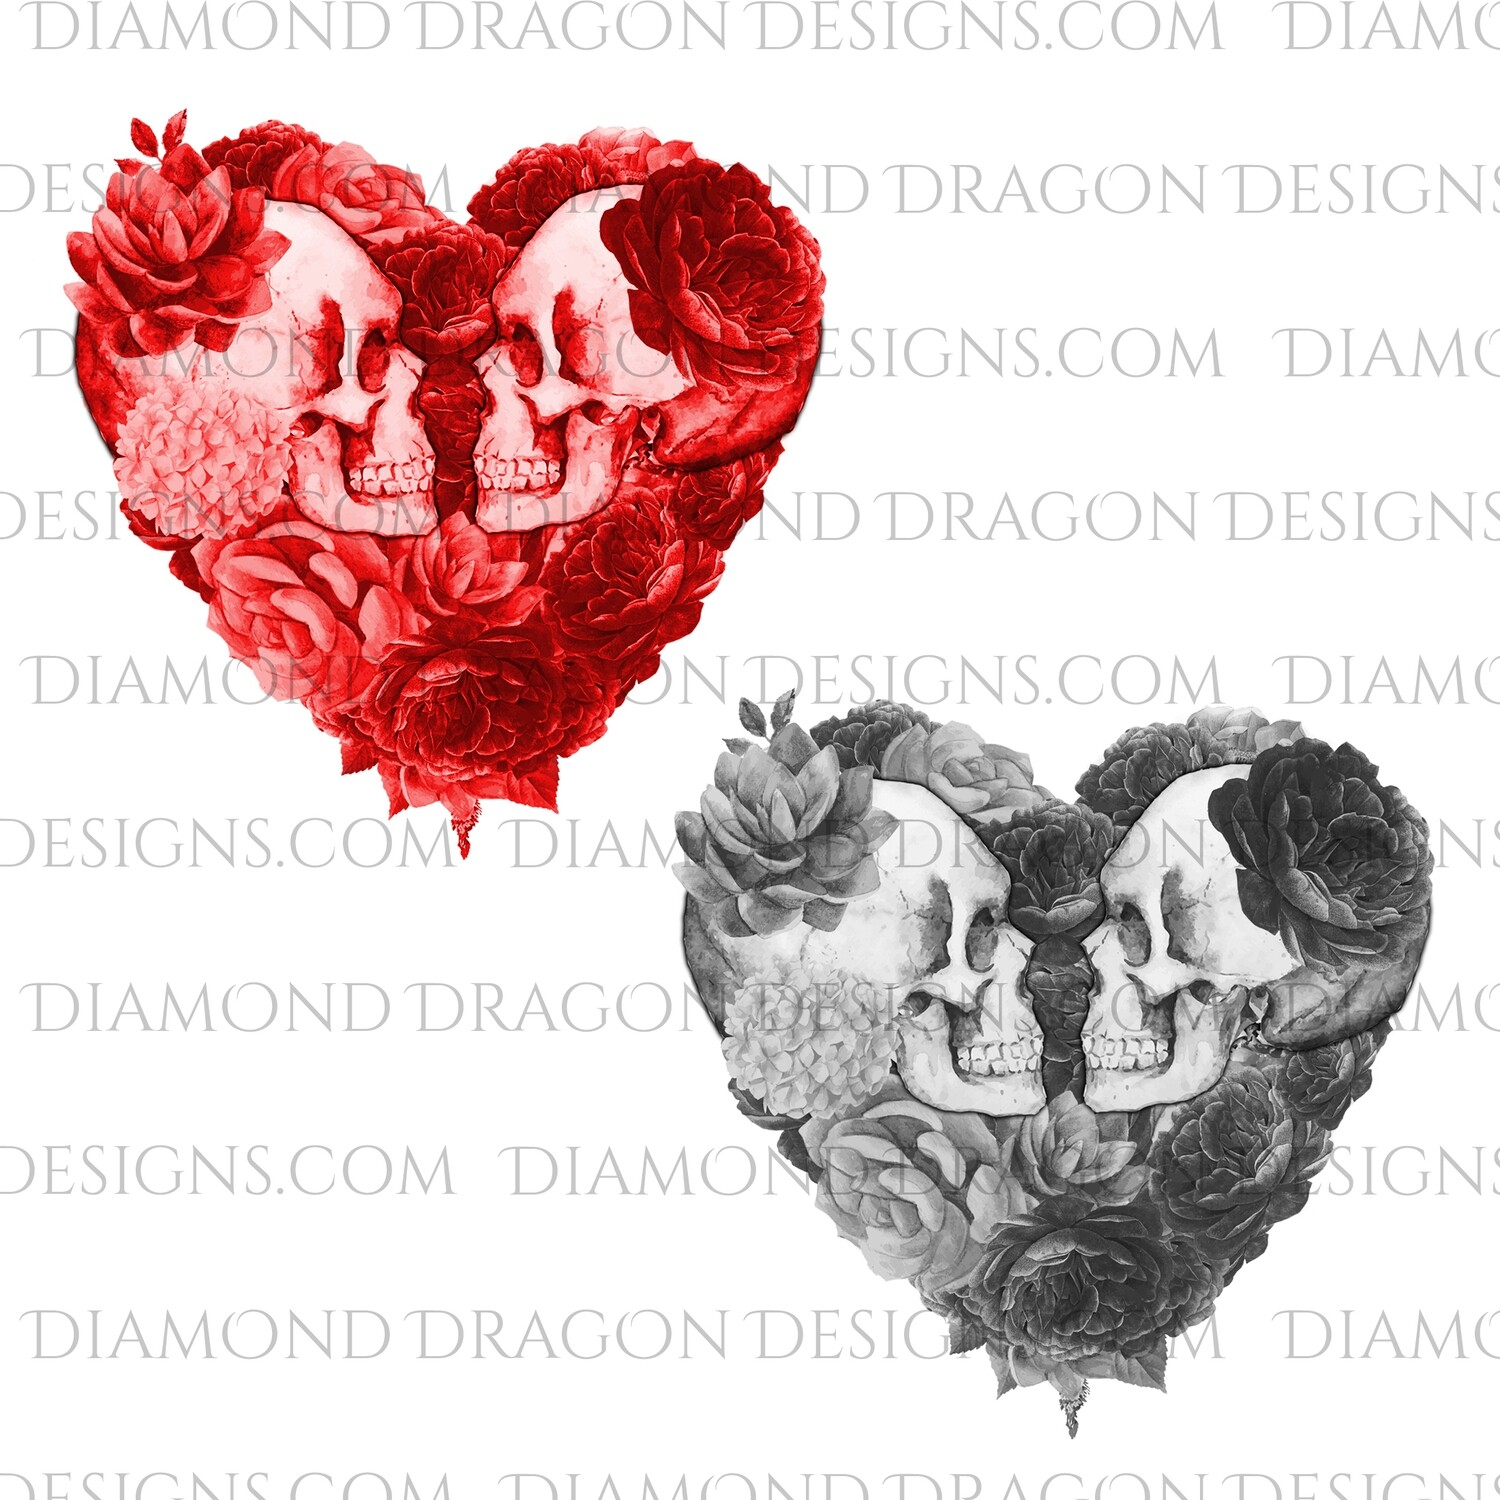 Halloween - Floral Heart Skulls Red & Black Set, Waterslide